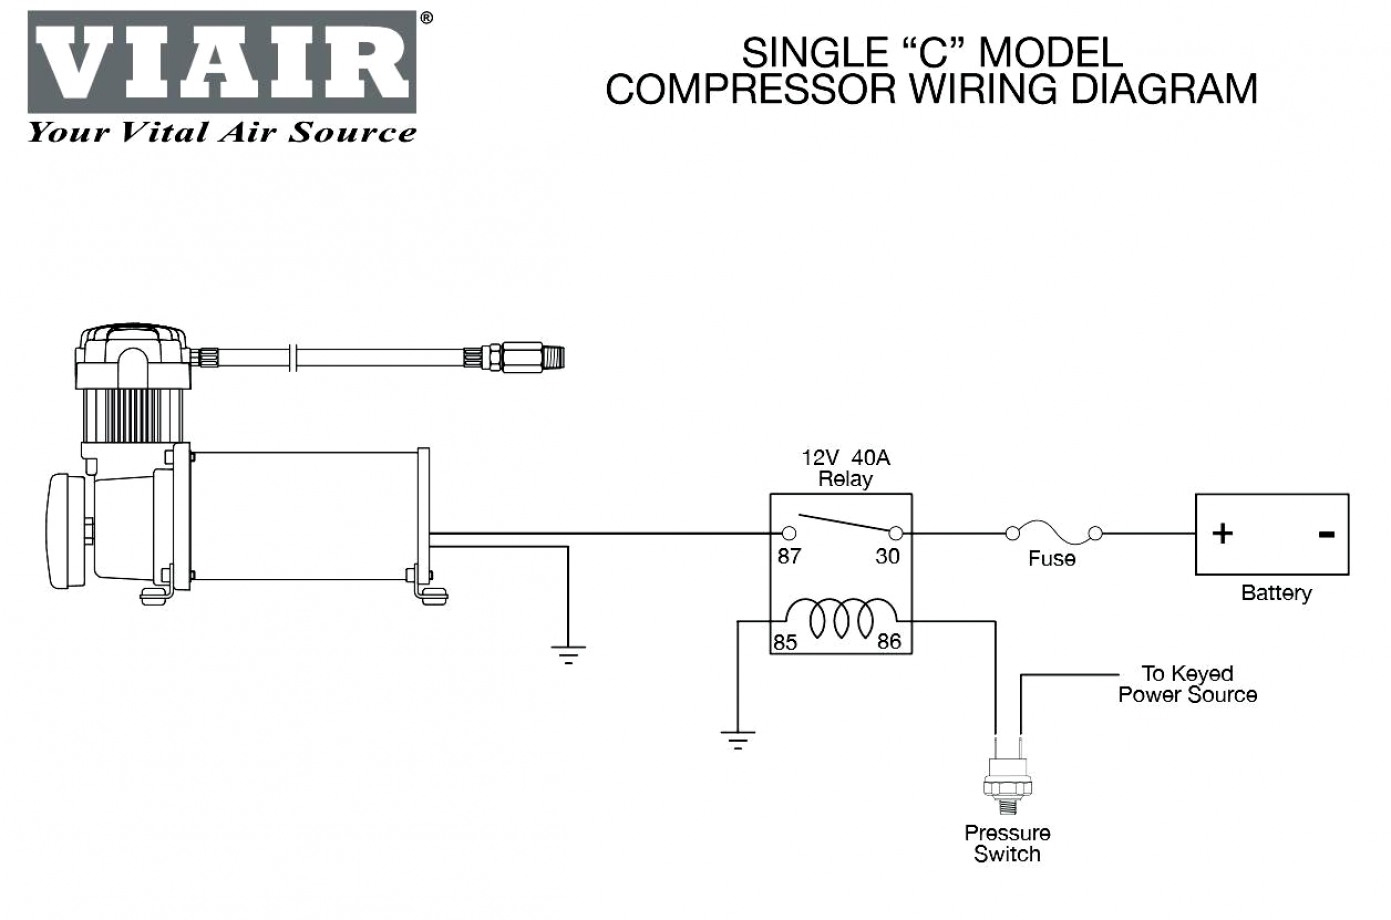 Air Compressor Wiring Diagram Schematic - Wiring Diagrams Hubs - Wiring Diagram For Air Compressor Motor